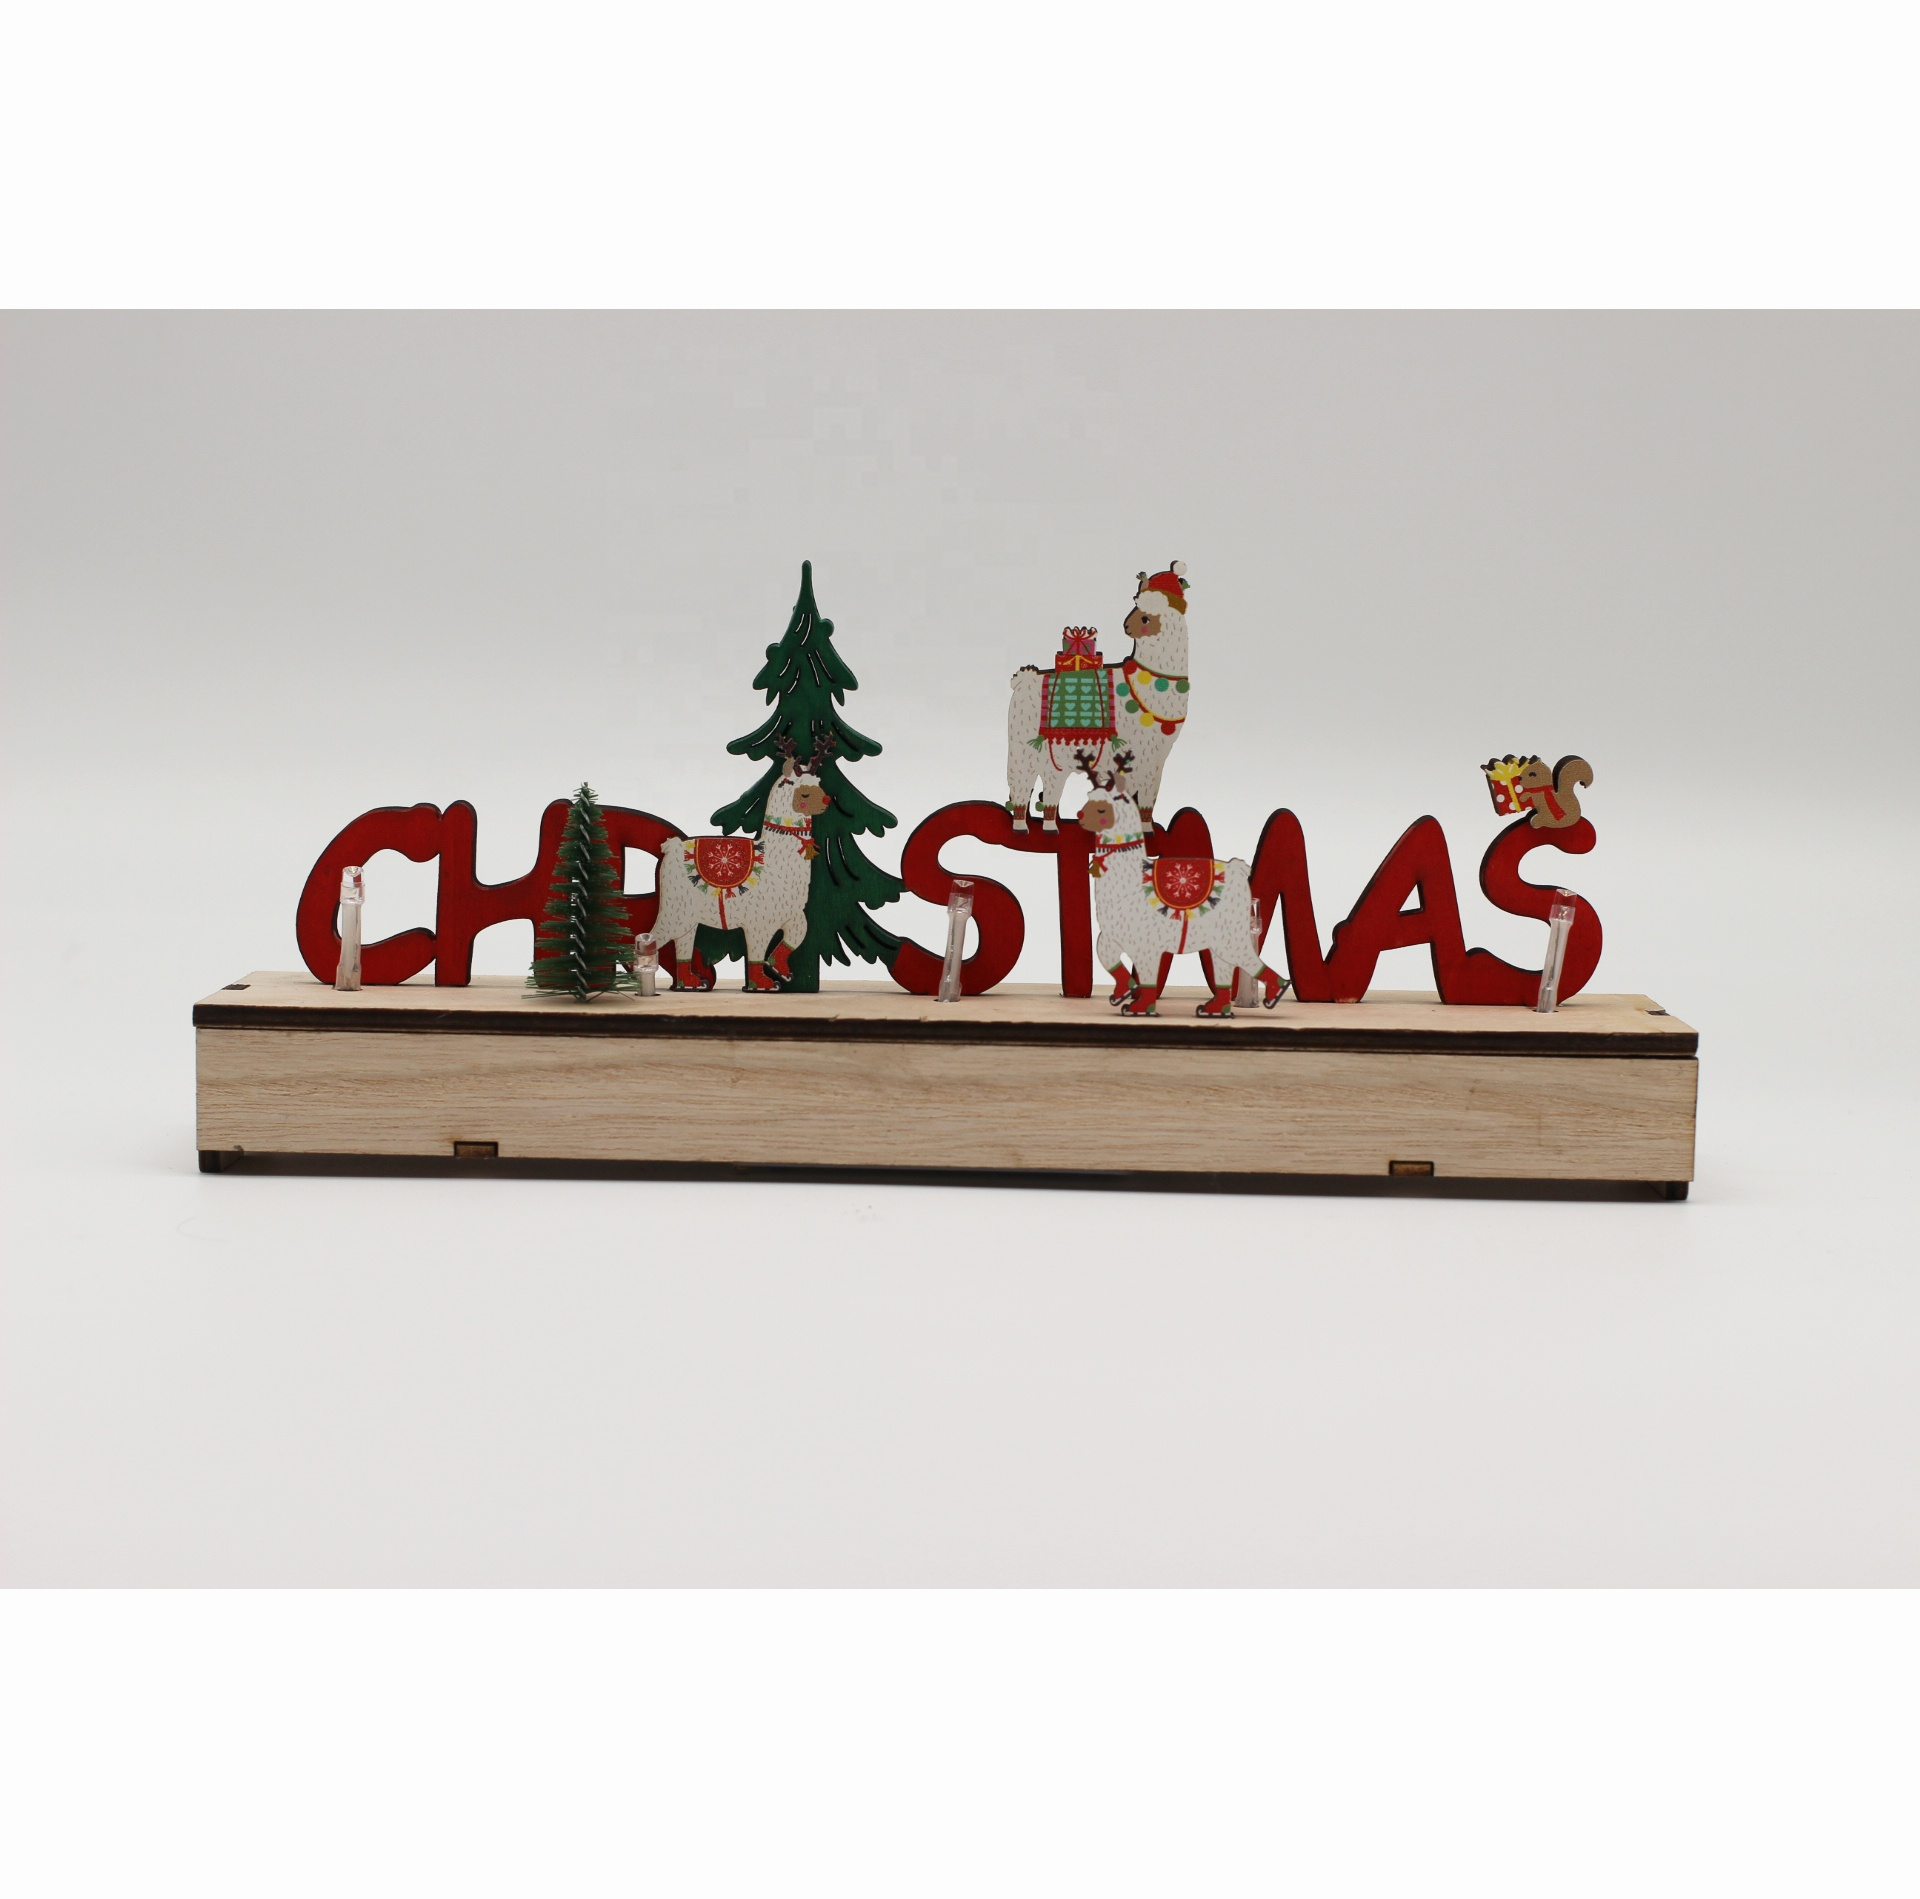 Christmas Ty 2021 Products 2021 New Products Christmas Wooden Craft With Led Light With Christmas Letters And Grass Mud Horse Decoration Buy 2021 New Products Christmas Wooden Craft With Led Light With Christmas Letters And